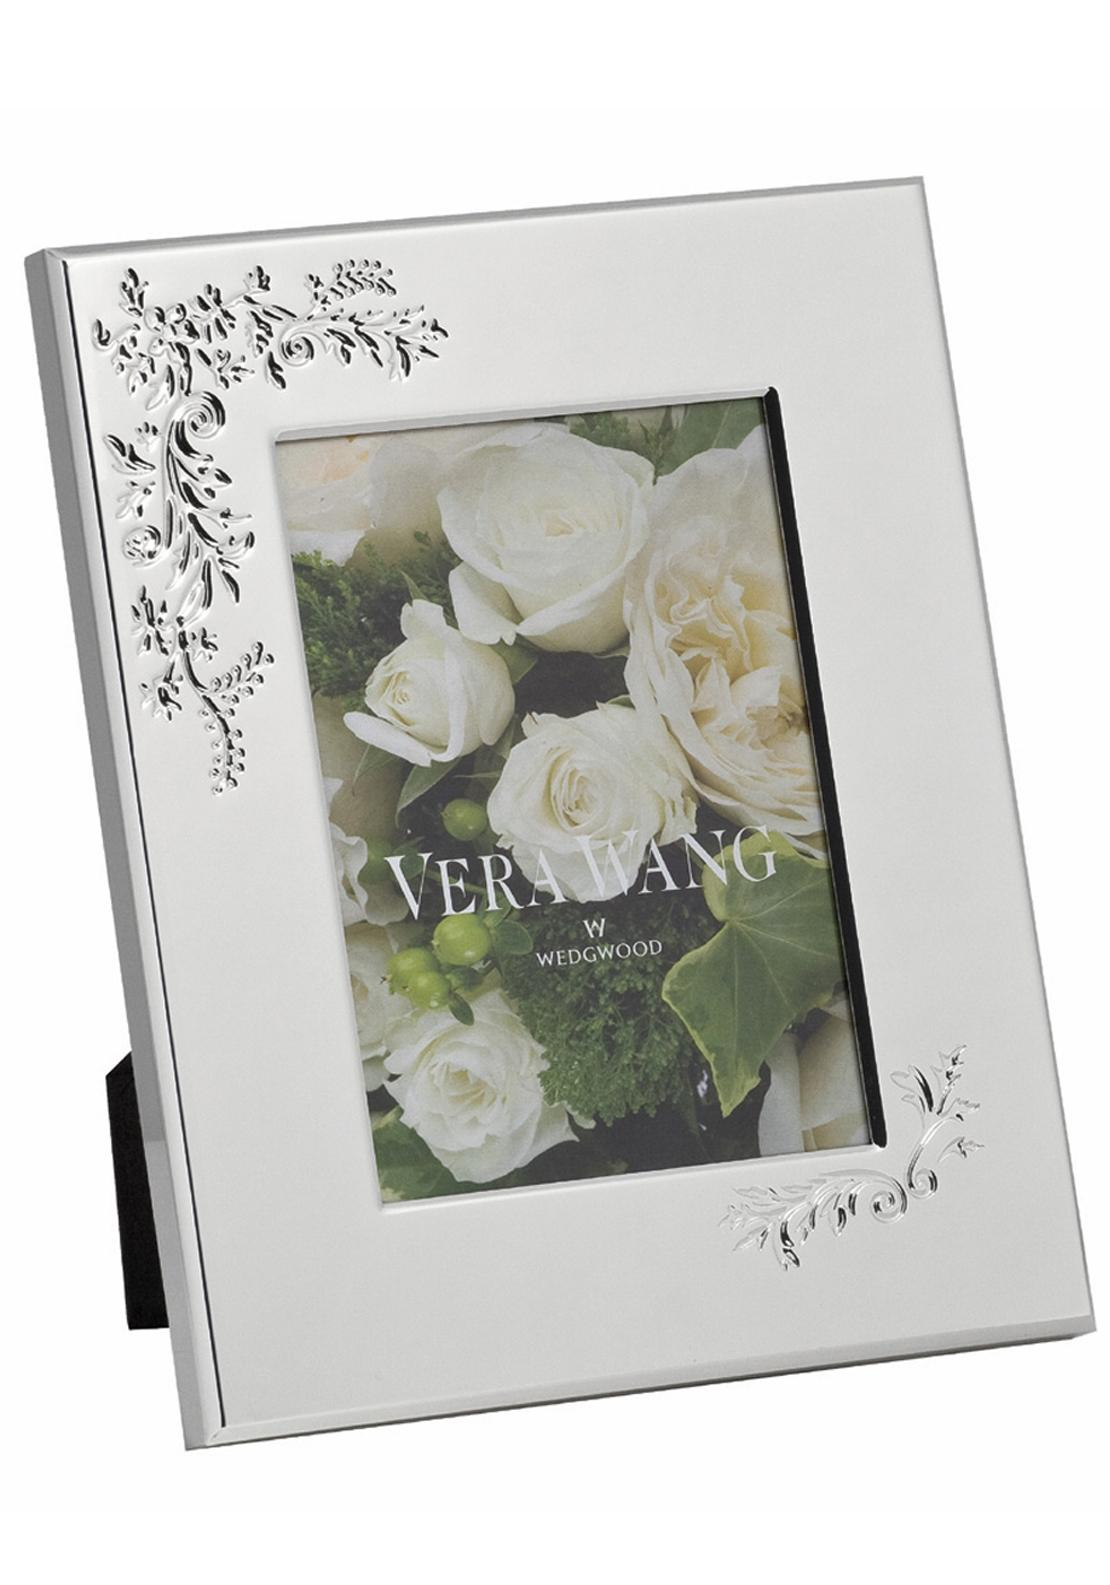 Vera Wang Wedgwood Lace Bouquet Photo Frame, 8in x 10in